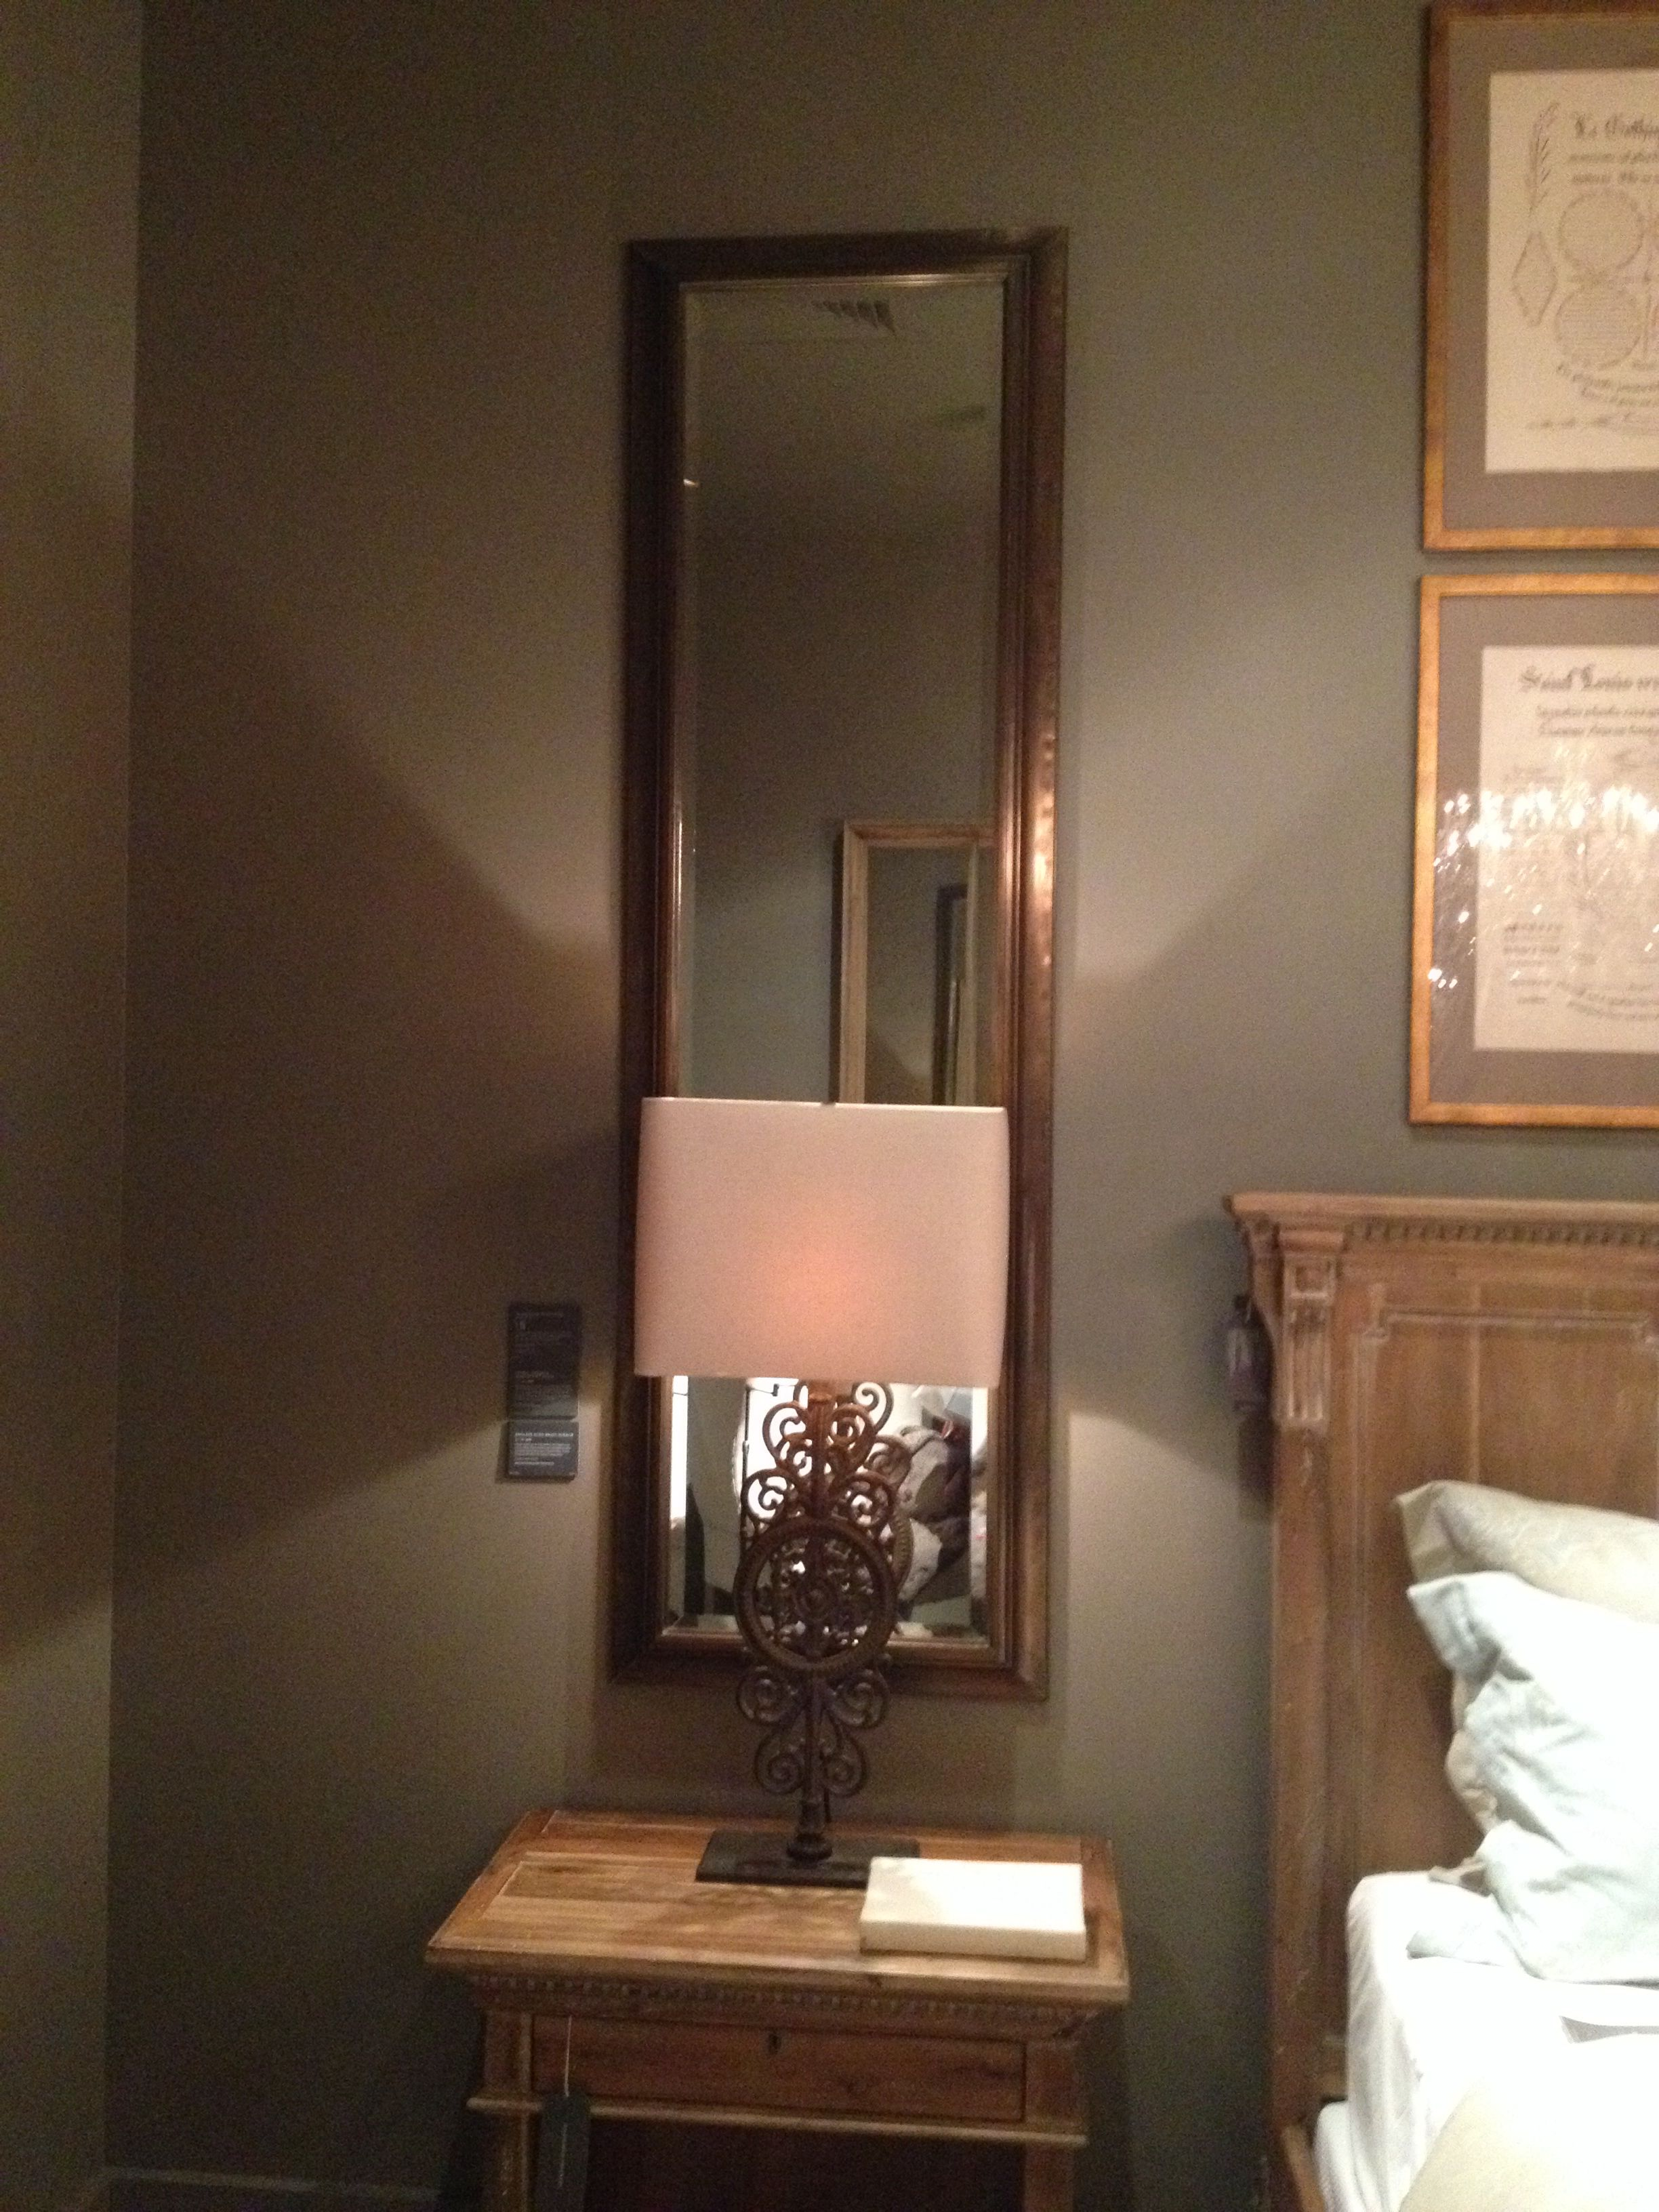 Mirrors Behind Bedside Tables: Mirror Behind Lamp On Bedside Table-brightens Room